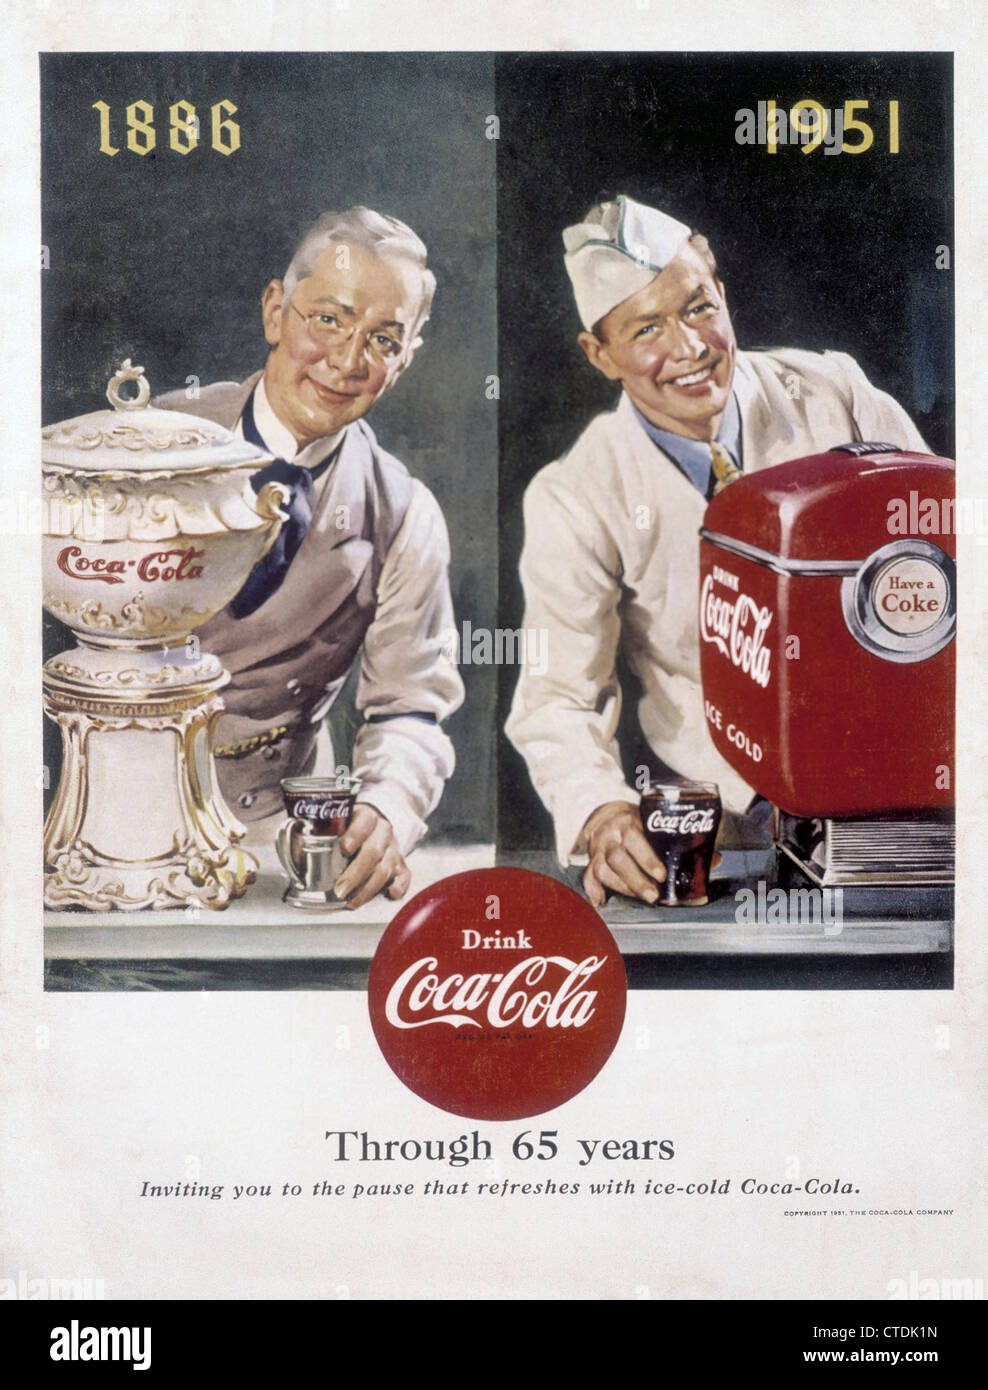 Coca cola ads images amp pictures becuo - 1920s Advertisements Coca Cola Images Amp Pictures Becuo Coca Cola Advertisement From 1951 In Life